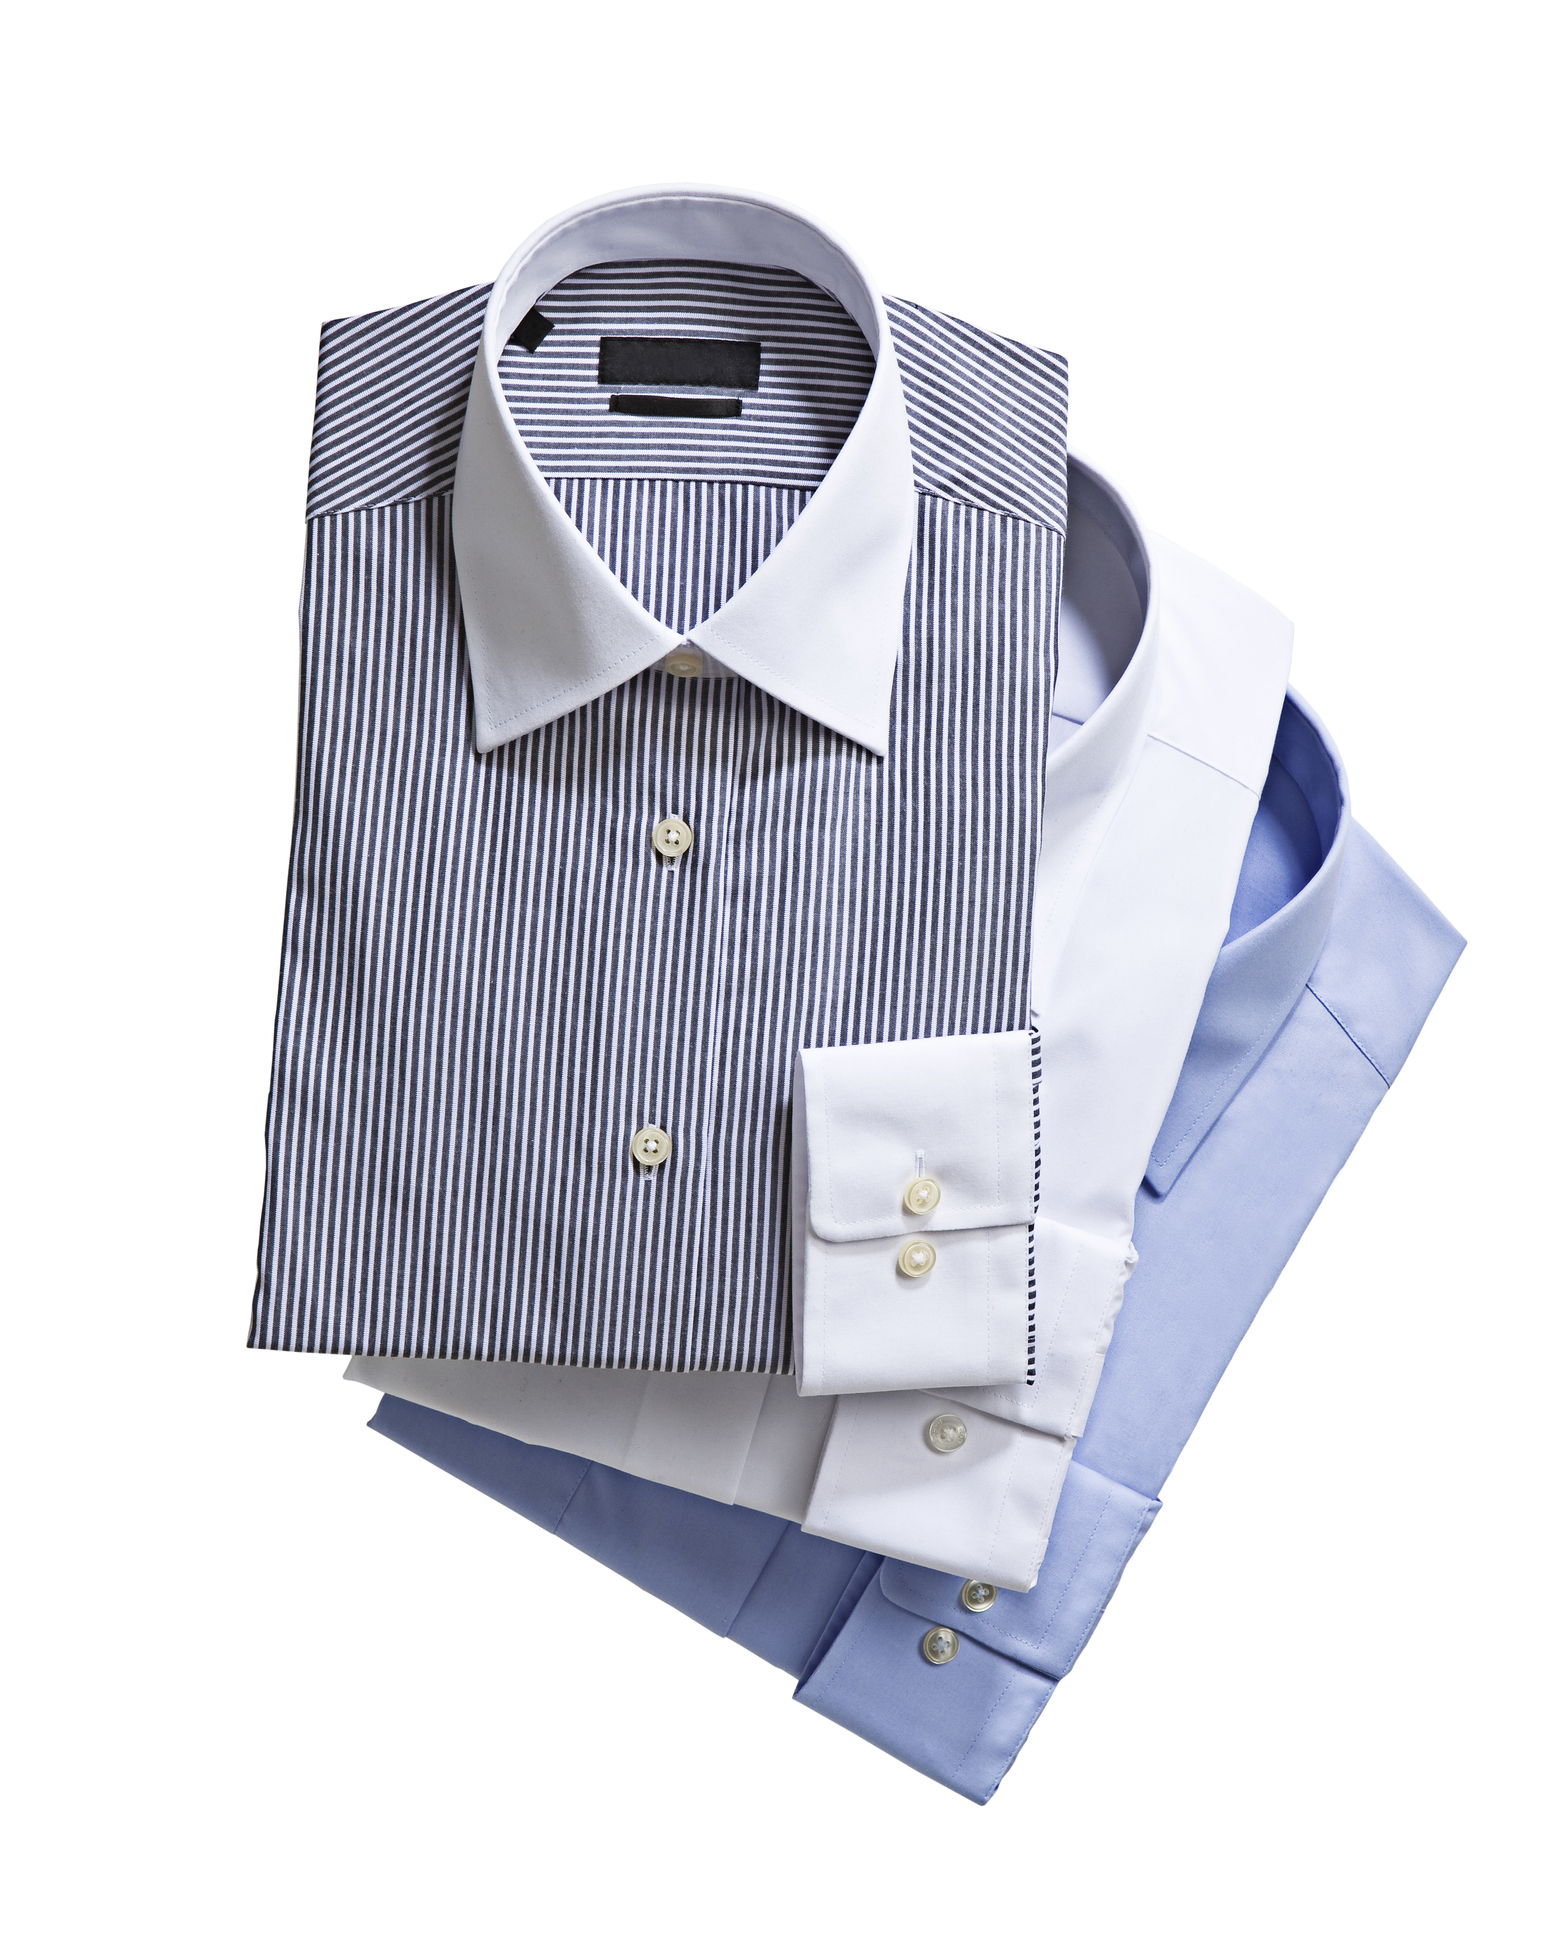 men's shirts Dry cleaning